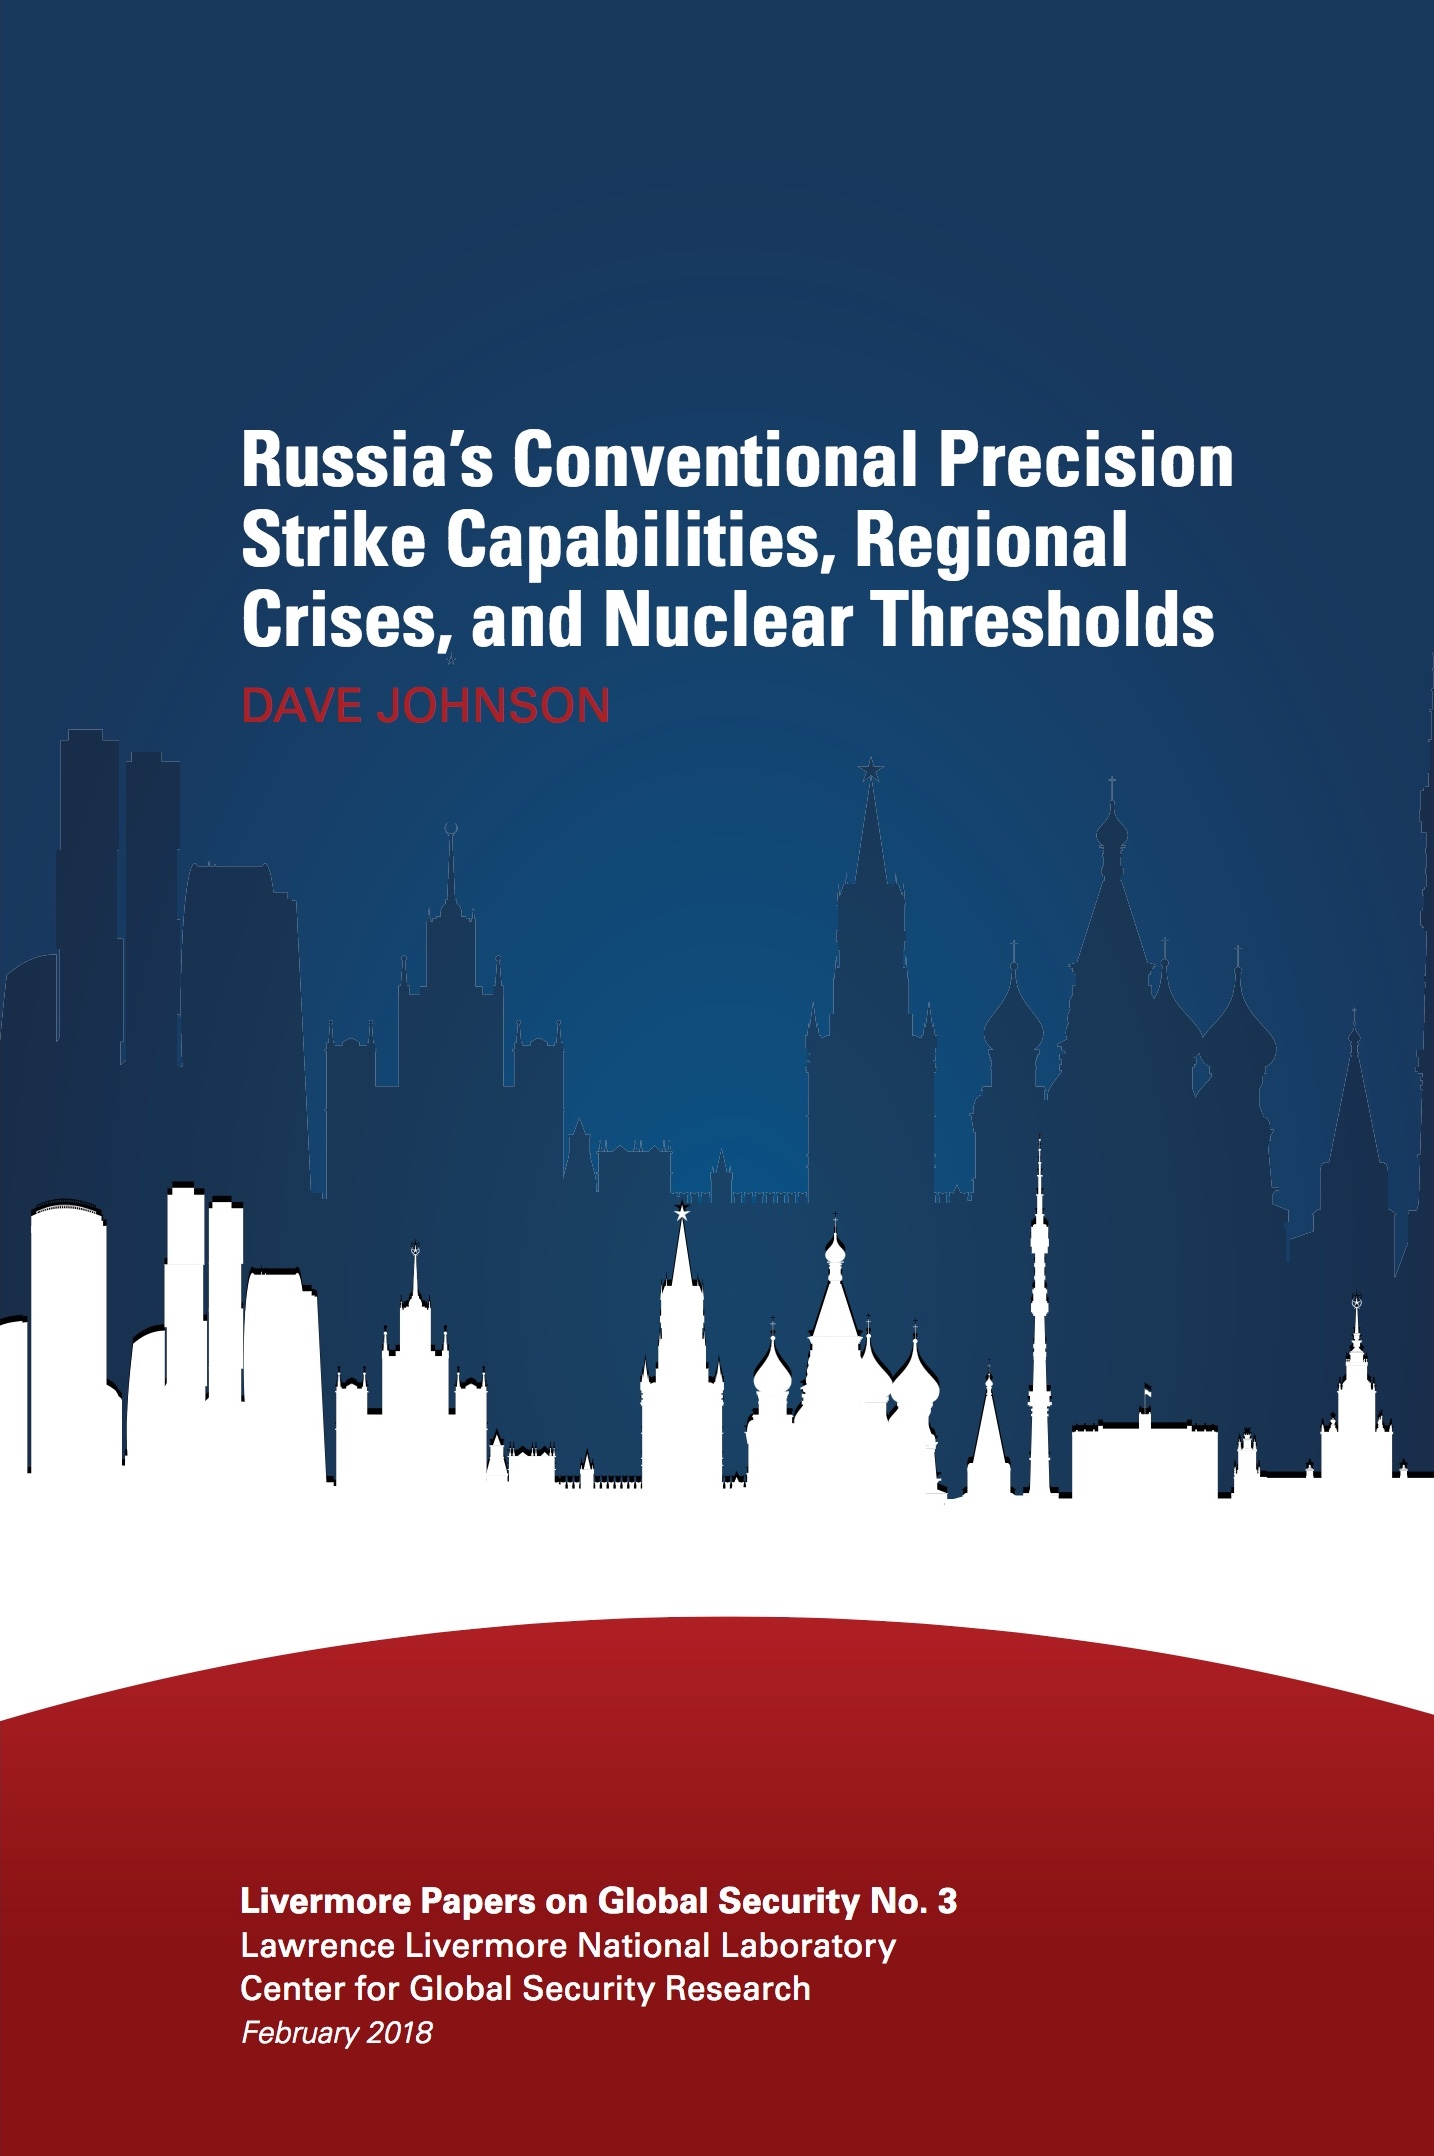 Russia's Conventional Precision Strike Capabilities,                      Regional Crises, and Nuclear Thresholds